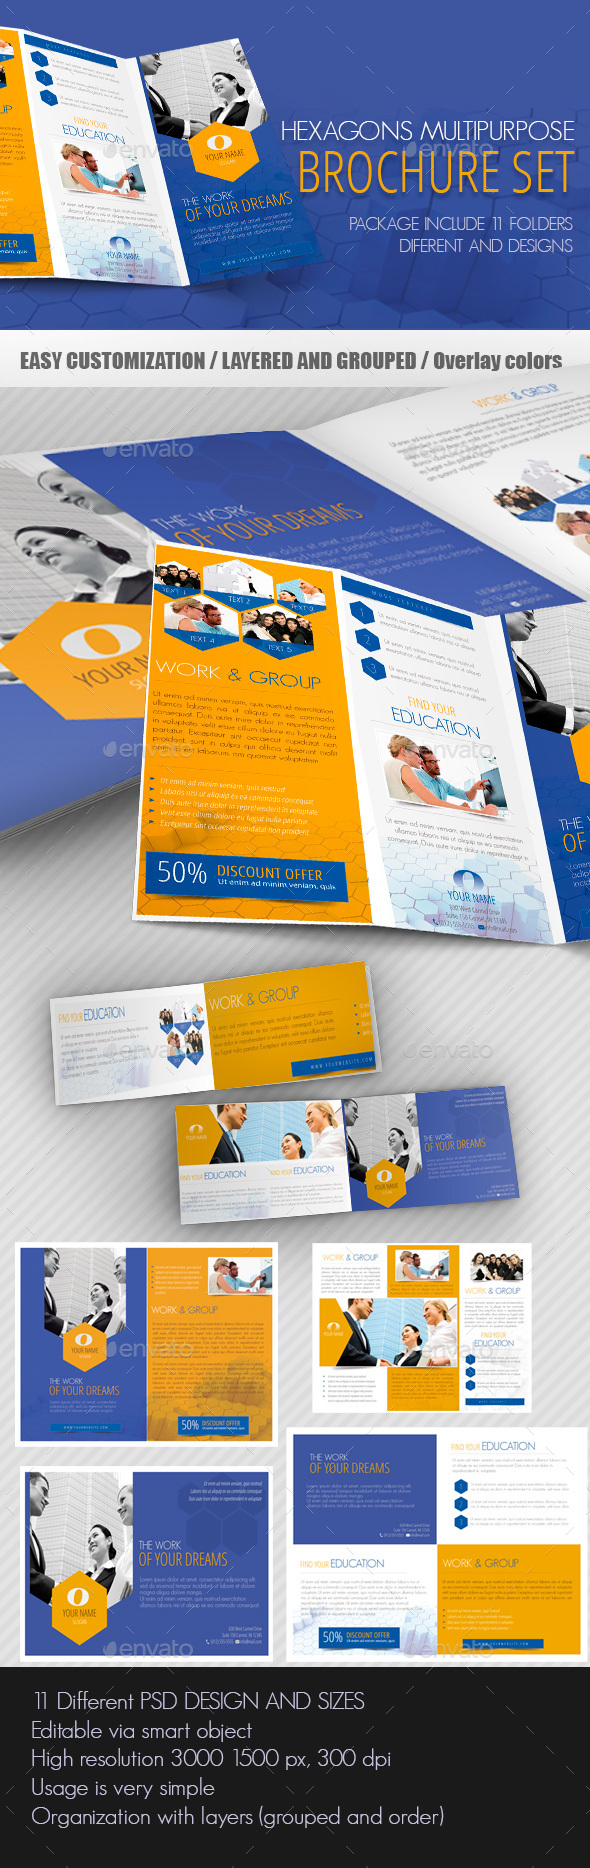 Hexagons Multipurpose Brochure Set - Brochures Print Templates